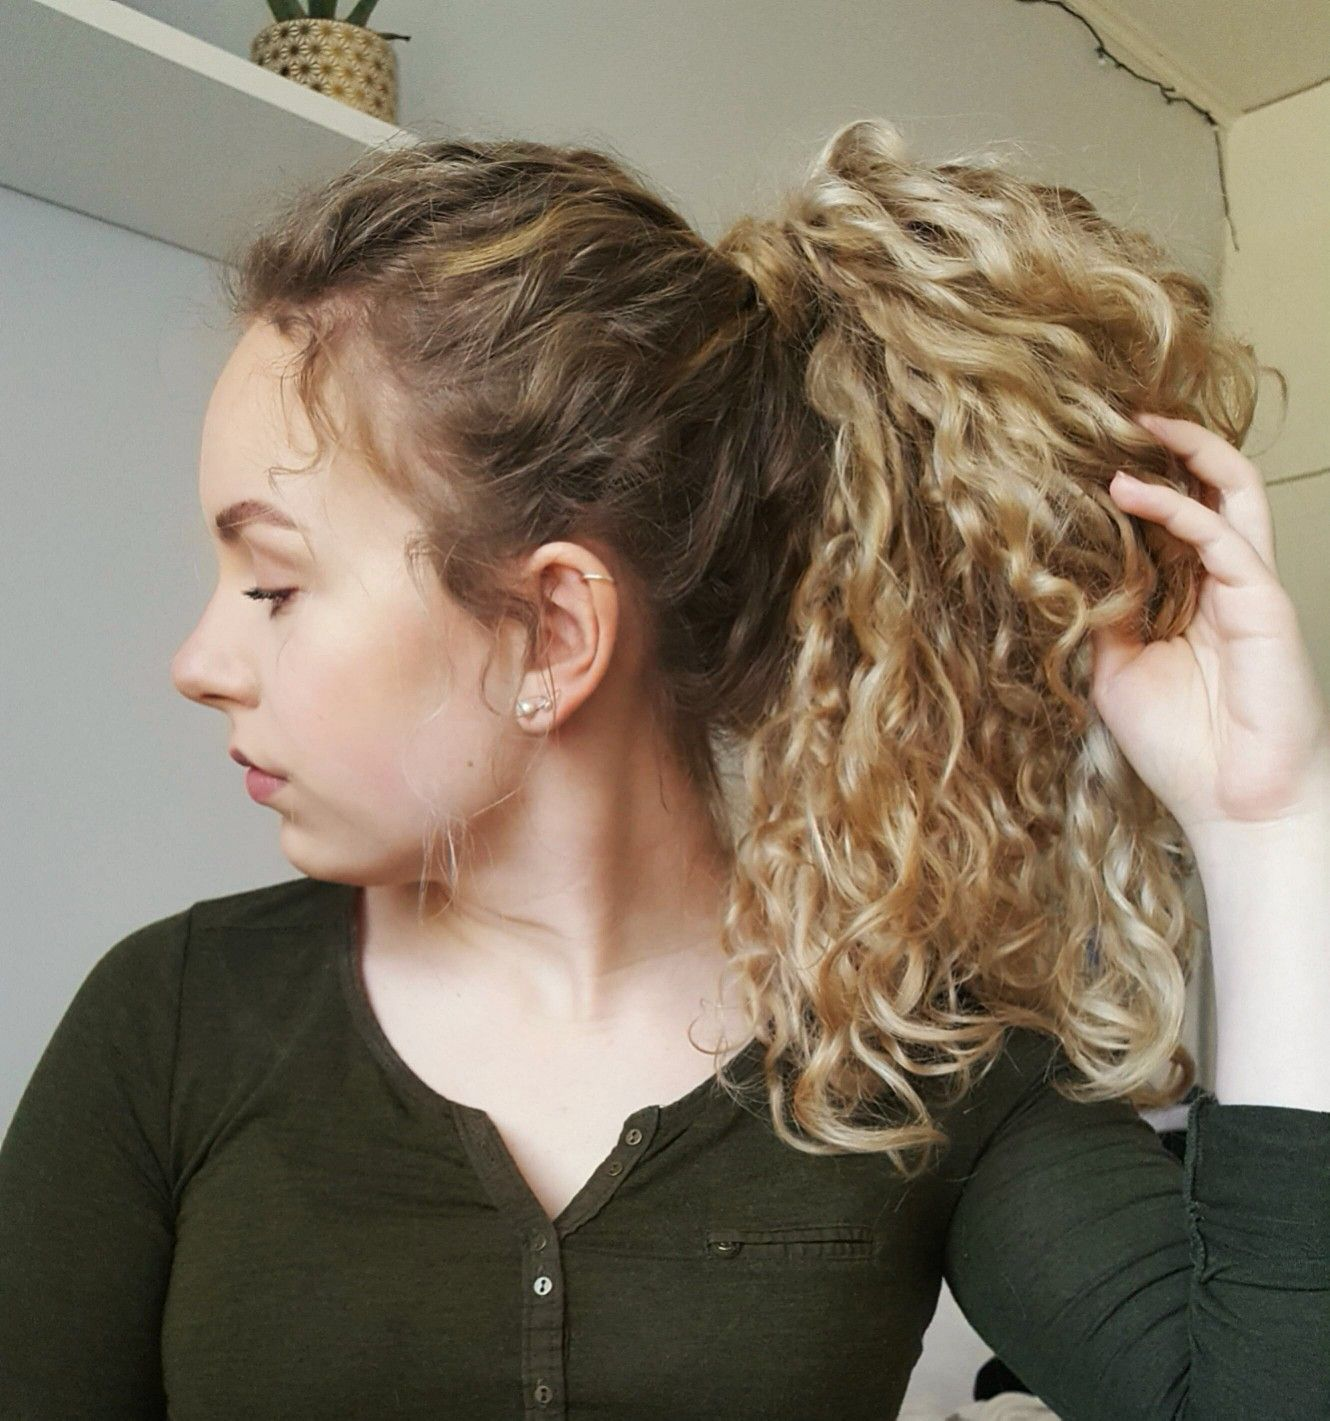 30 Great Image Of Curly Hairstyles For Blondes Lifestyle By Mediumgratuit Info Hair Styles Curly Hair Styles Naturally Long Natural Curls